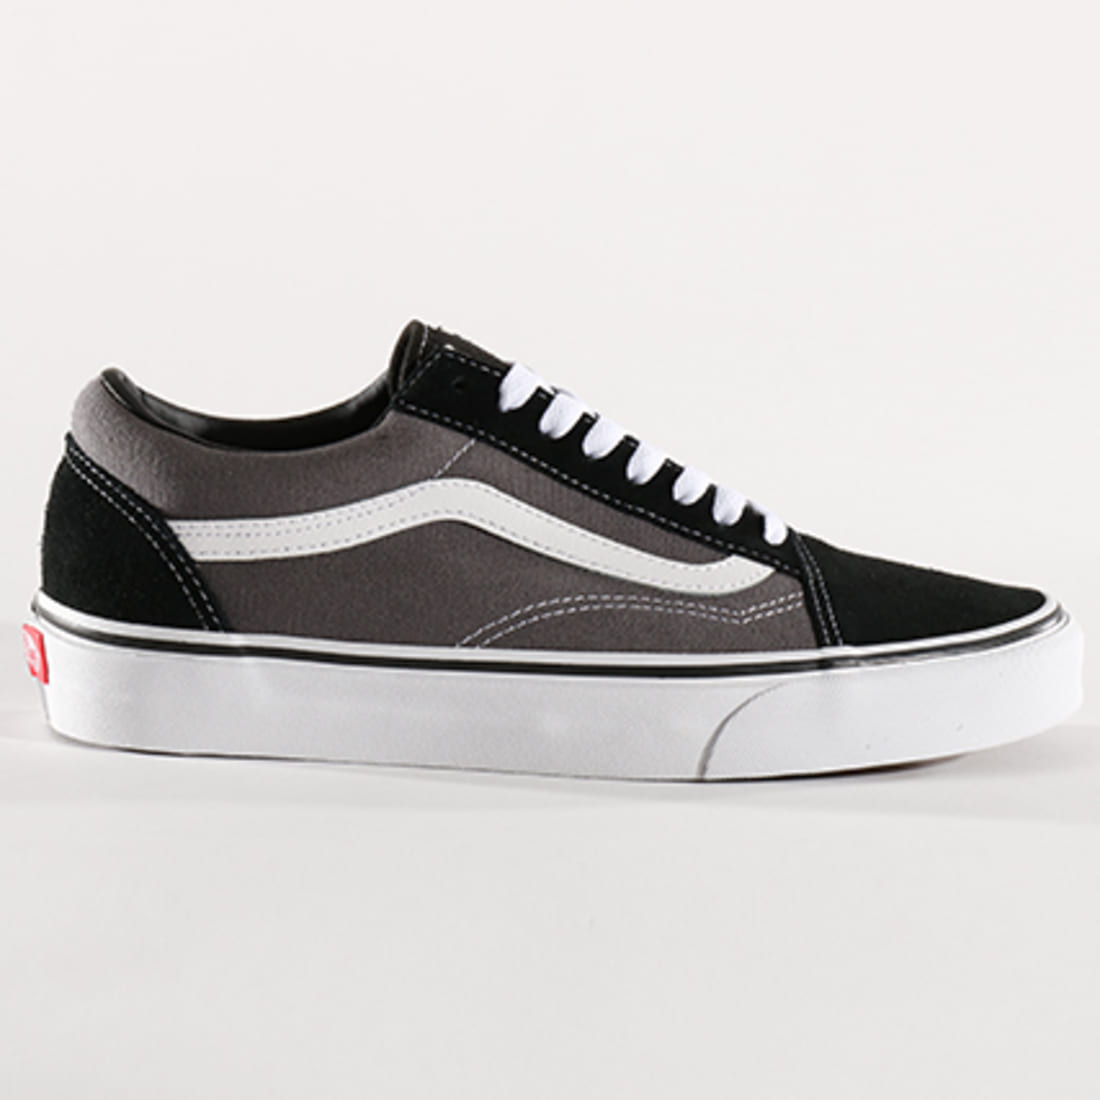 Vans Baskets Old Skool KW6HR0 Black Pewter